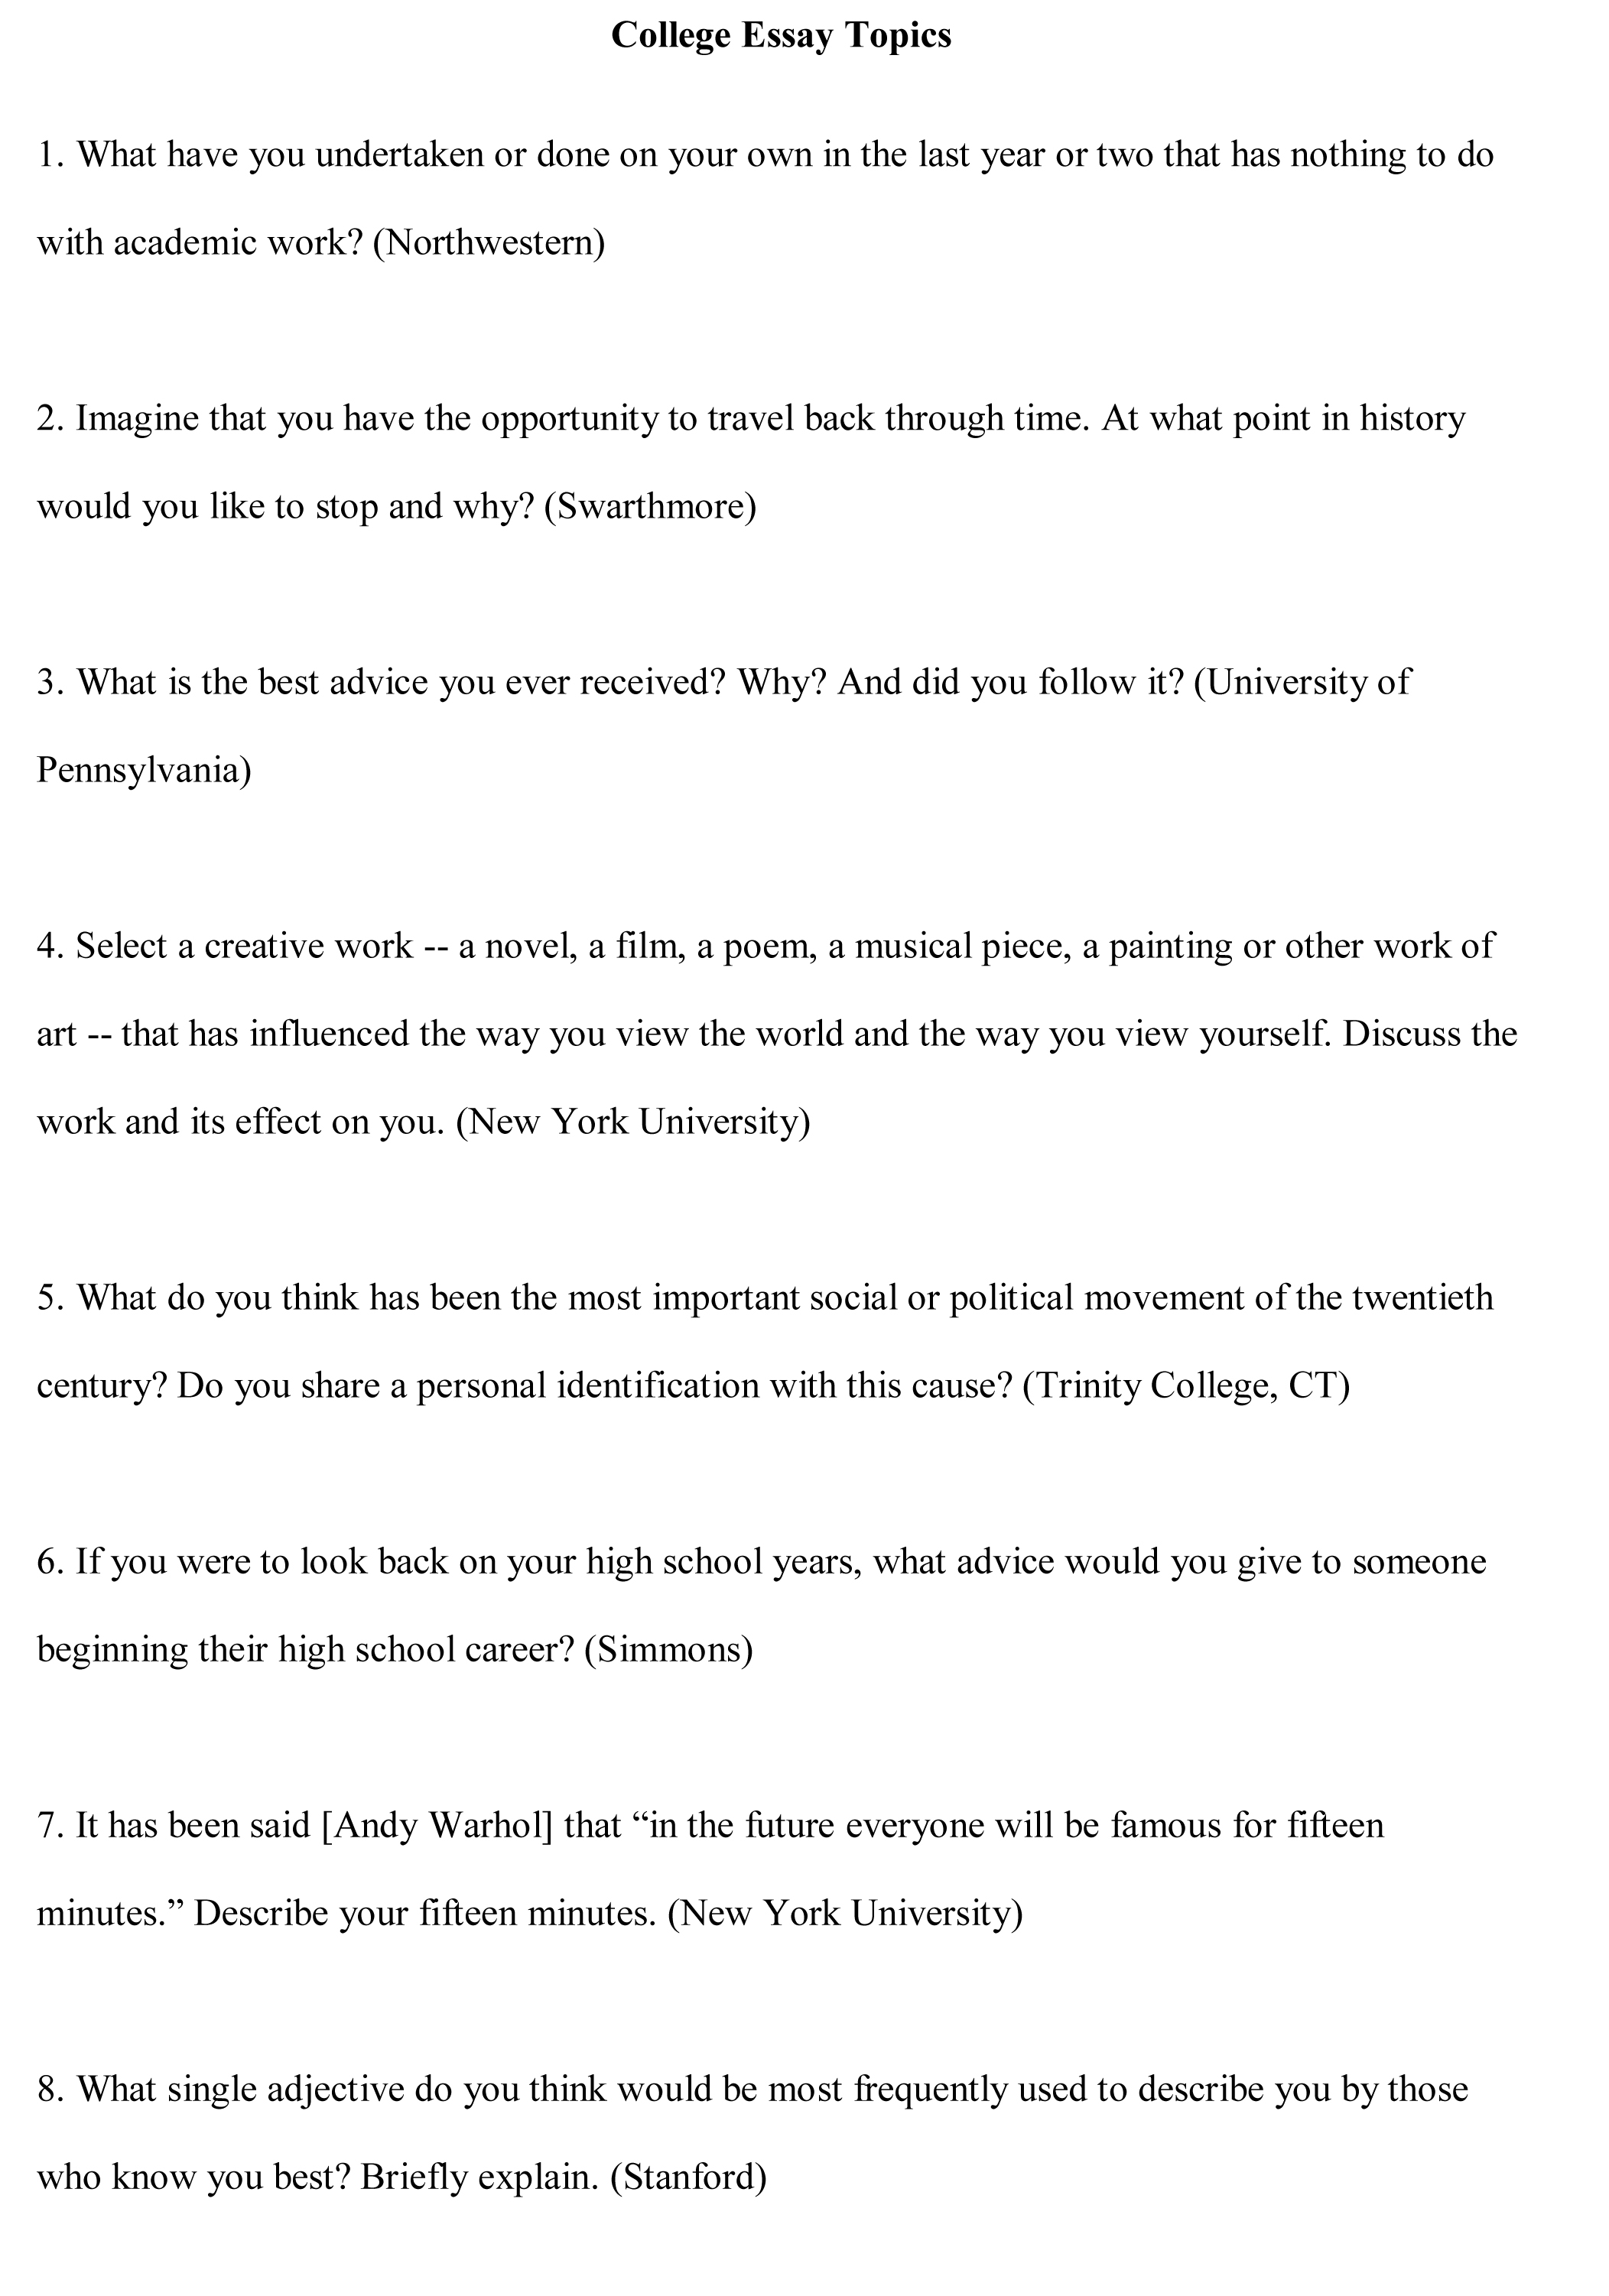 005 College Essay Topics Free Sample1 Good For Research Paper Breathtaking In Interesting Students Papers Full